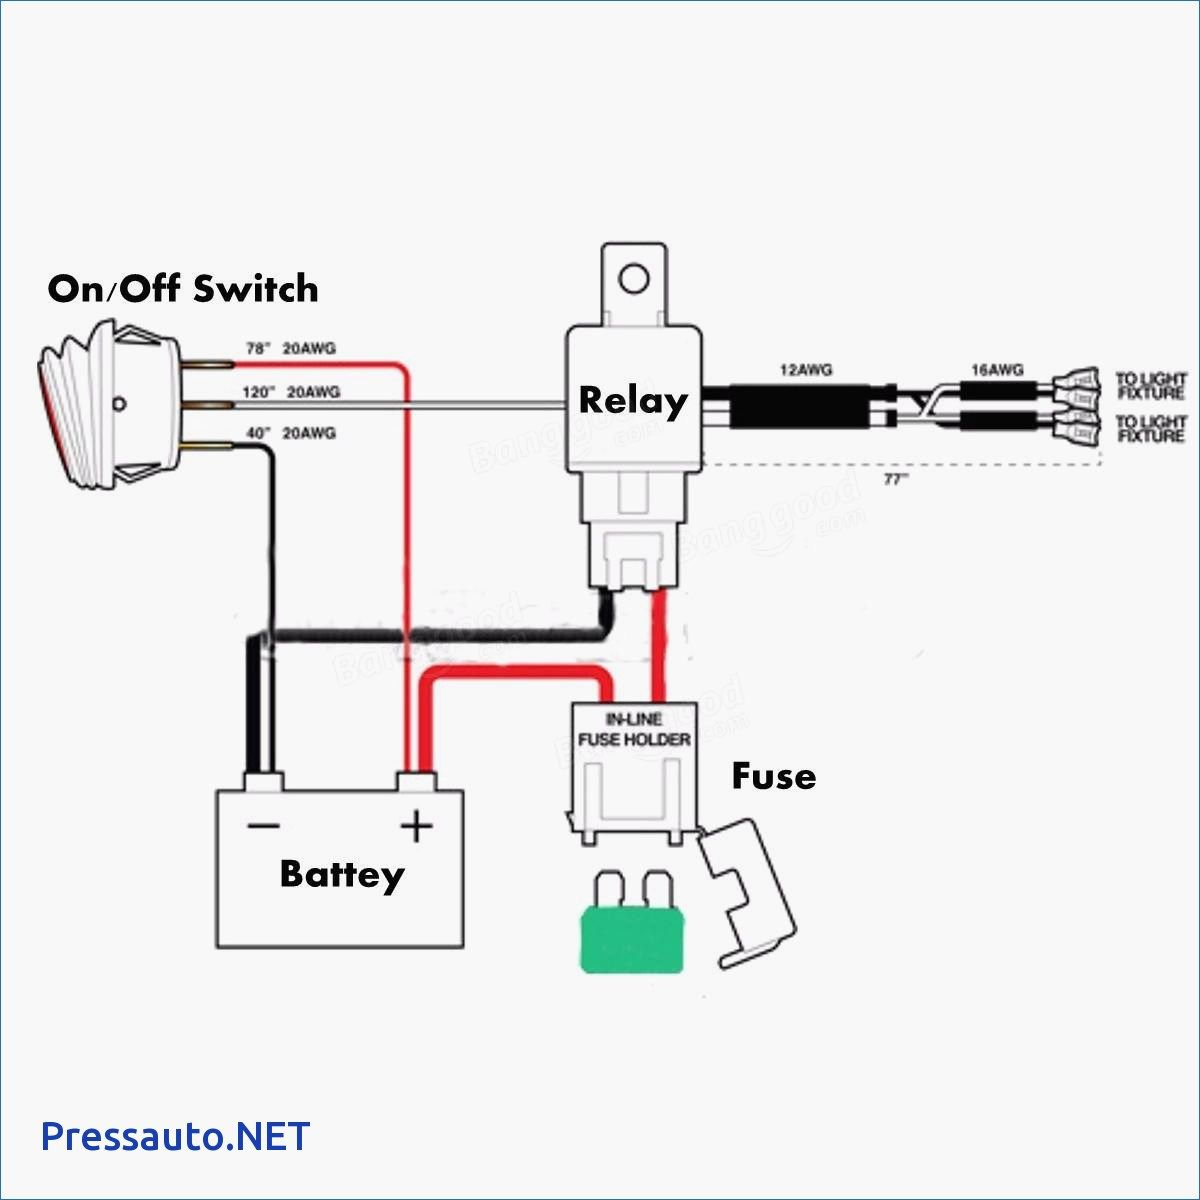 5 Pin 40 Amp Relay - Customer Questions